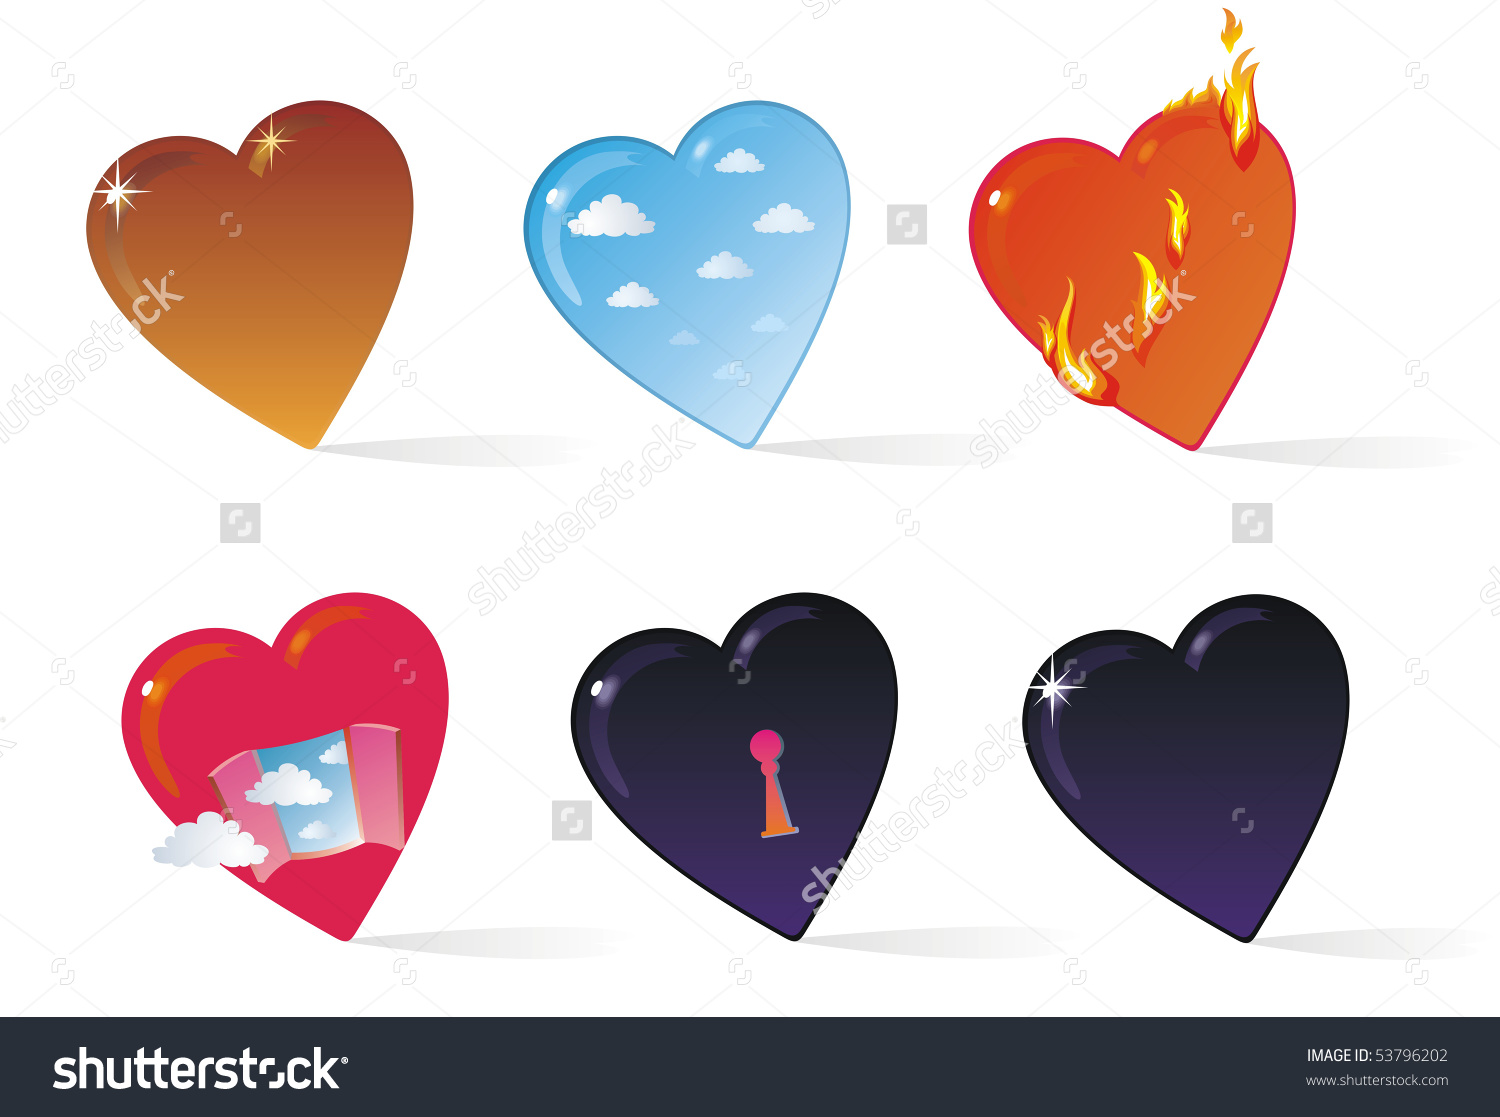 Heart Collection Clipart Six Symbolic Hearts Stock Illustration.